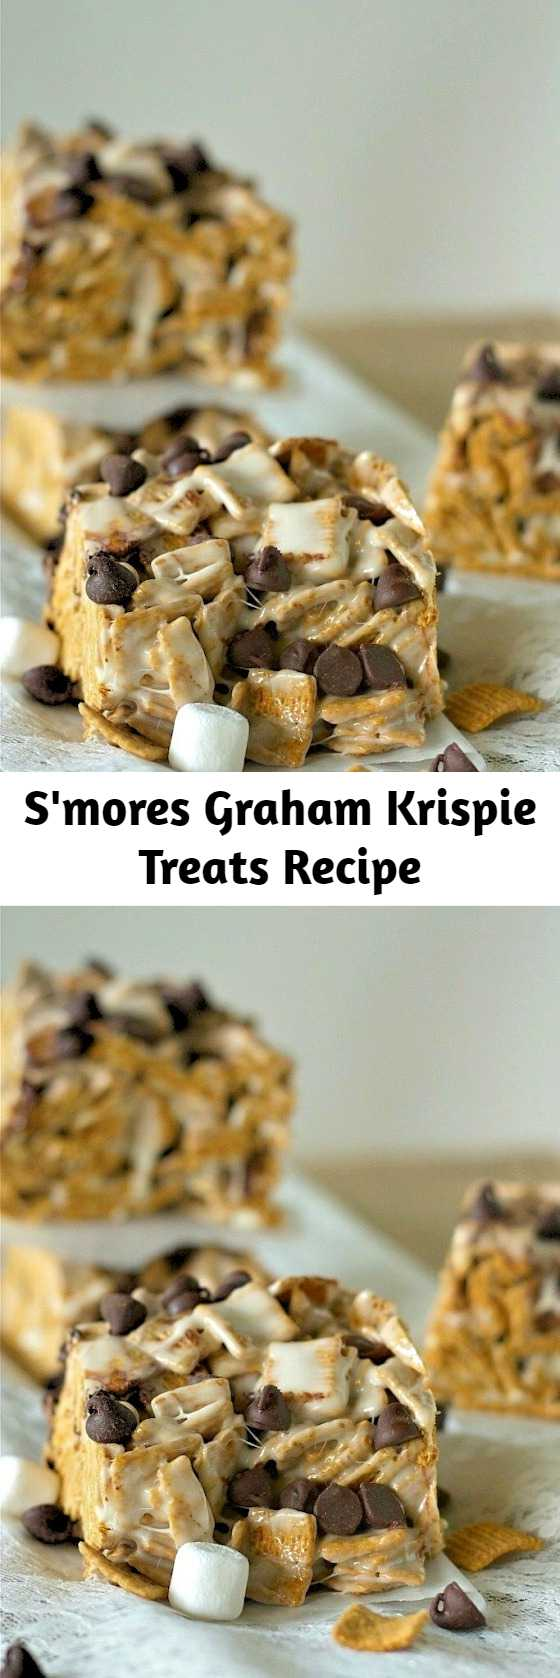 Want the taste of classic s'mores without building a campfire? These s'mores graham krispie treats come together in a flash with just a couple of ingredients! Get your summer s'mores must have in a hurry!